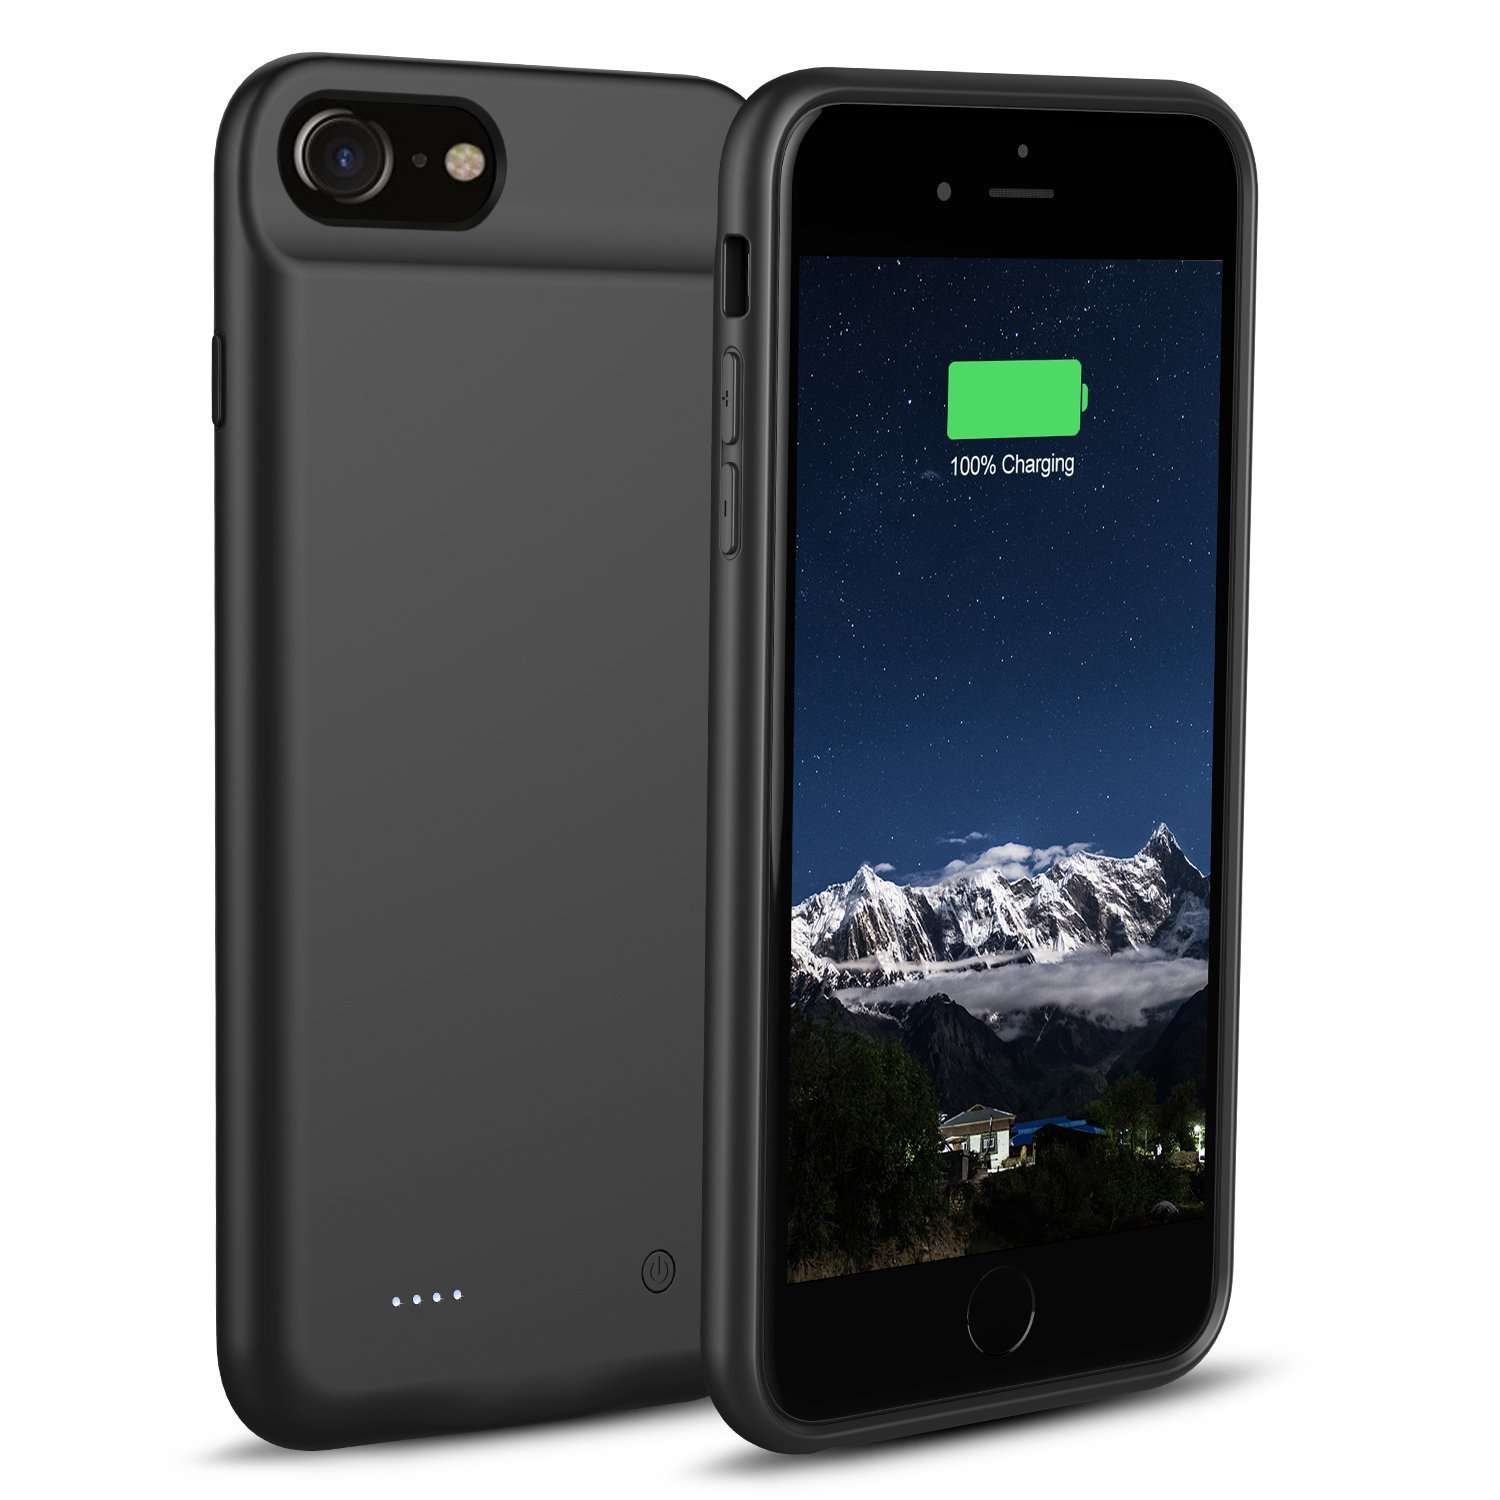 iZamWow iPhone 6/6s/7/8 Battery Case, 3000mAh Portable Charger Case Rechargeable Extended Battery Pack Protective Backup Charging Case Cover (Black)